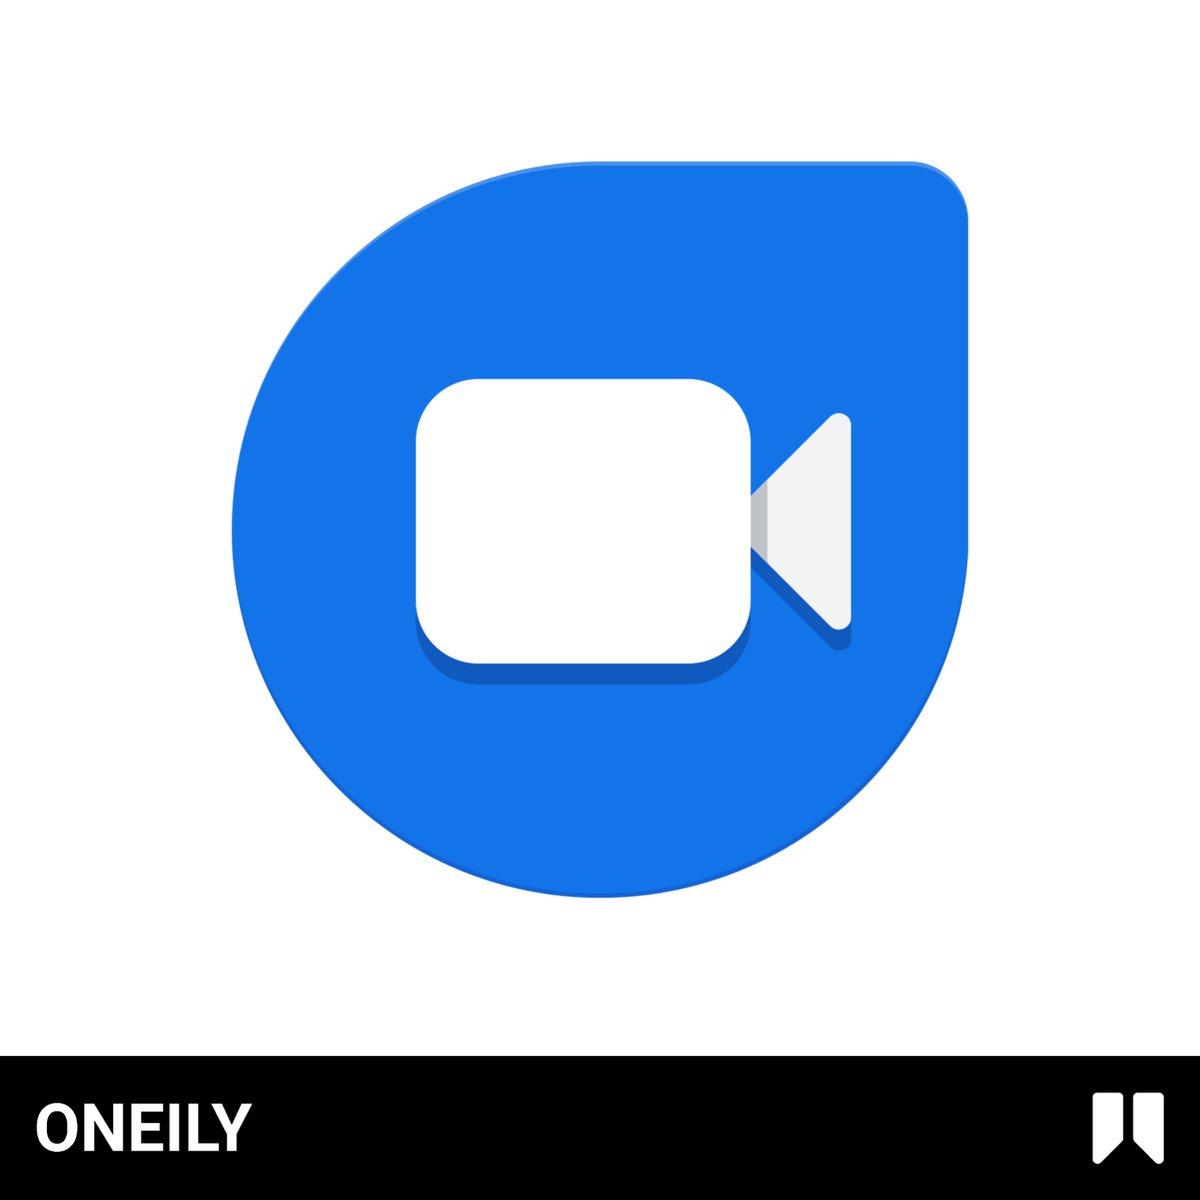 Google Duo may soon stop working on uncertified Android devices.  #Google #GoogleDuo #Android